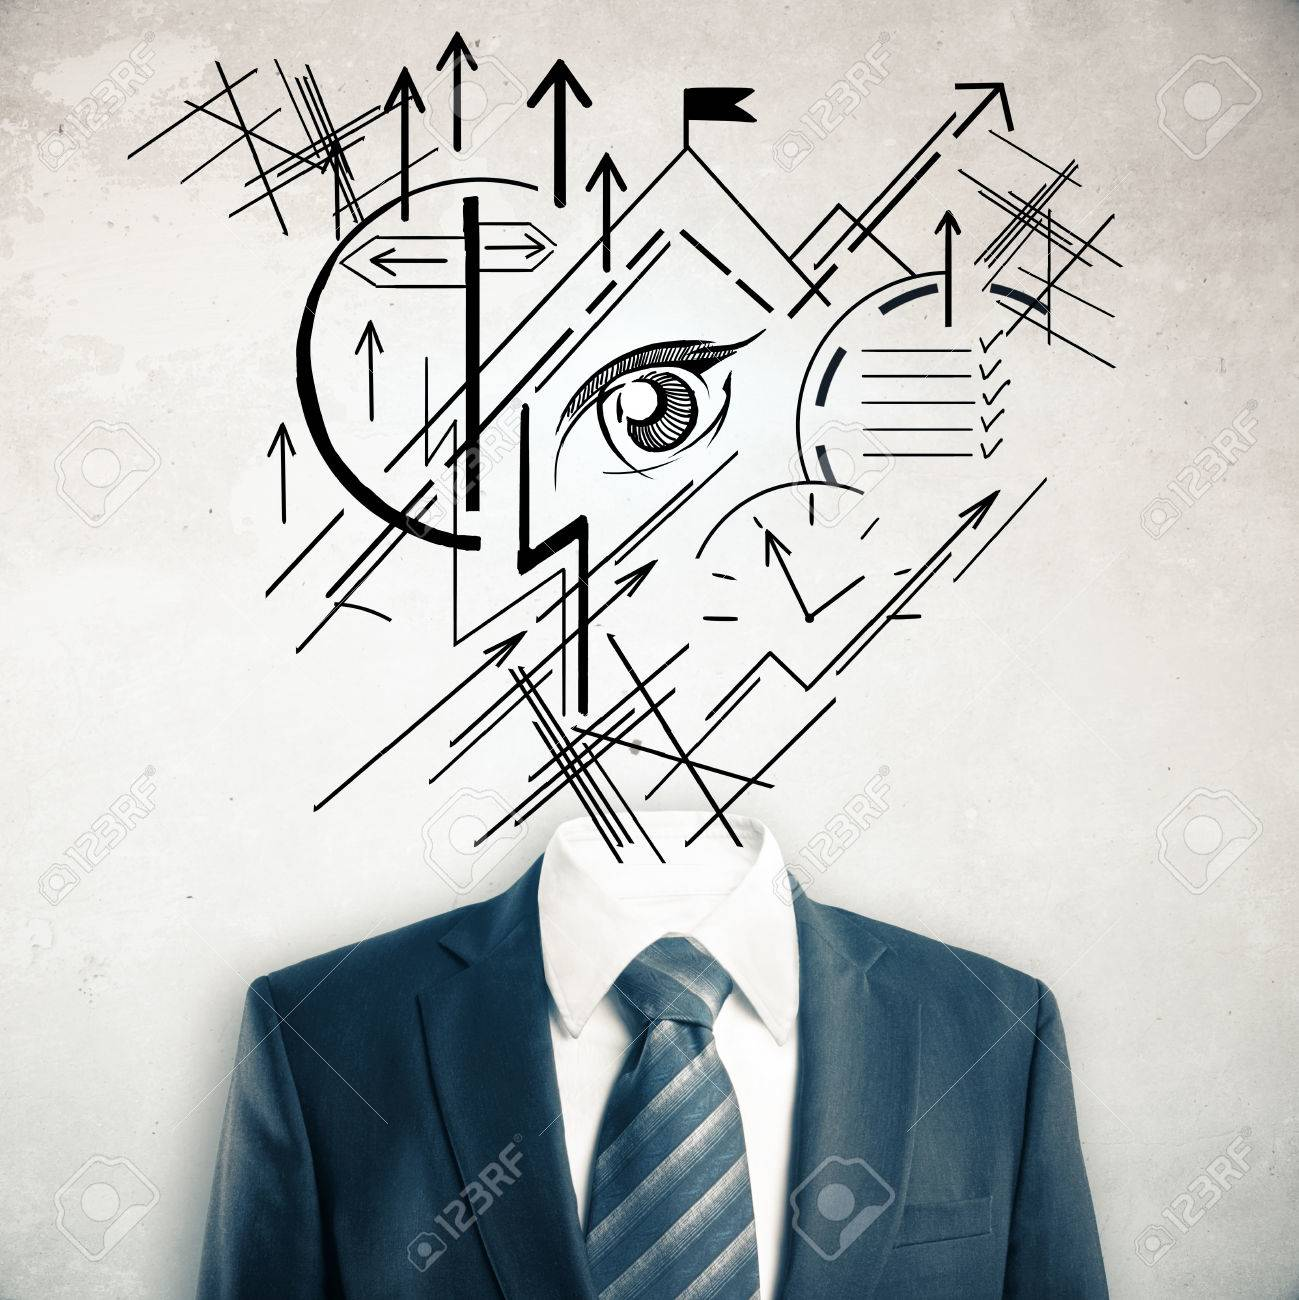 1299x1300 Headless Businessman In Suit And Tie With Abstract Geometric